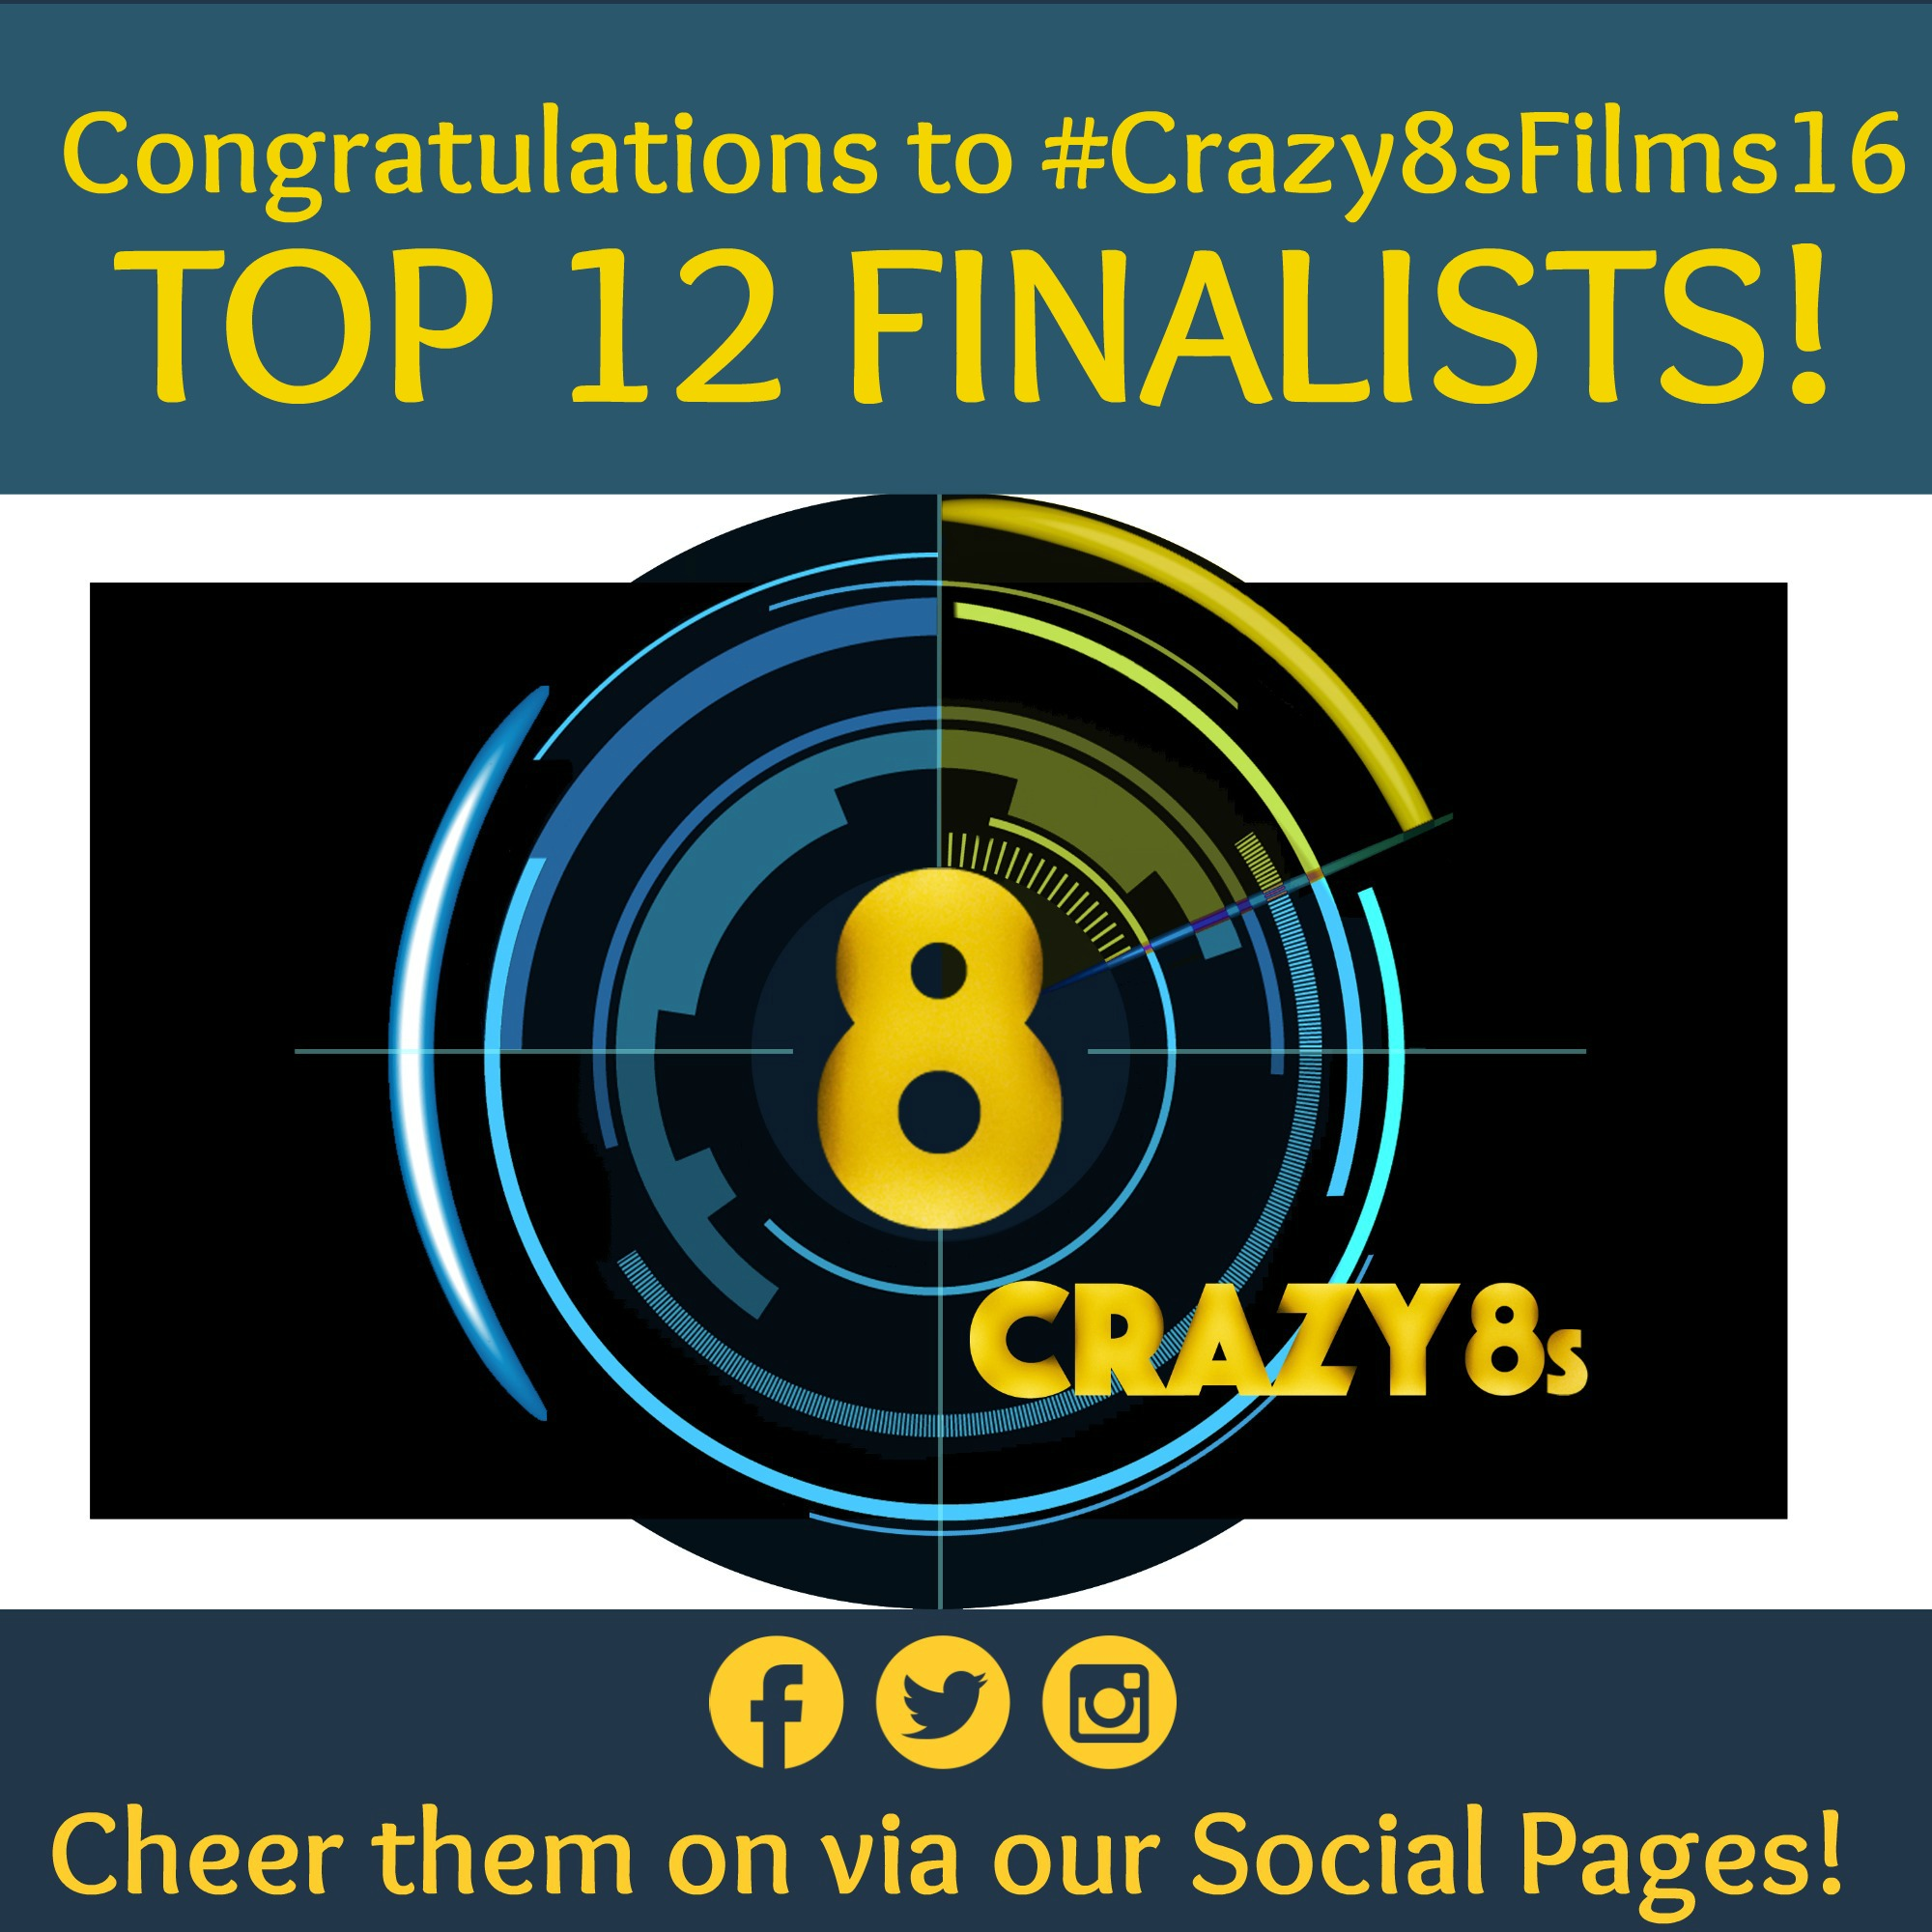 #Crazy8sFilms16 Top 12 meme